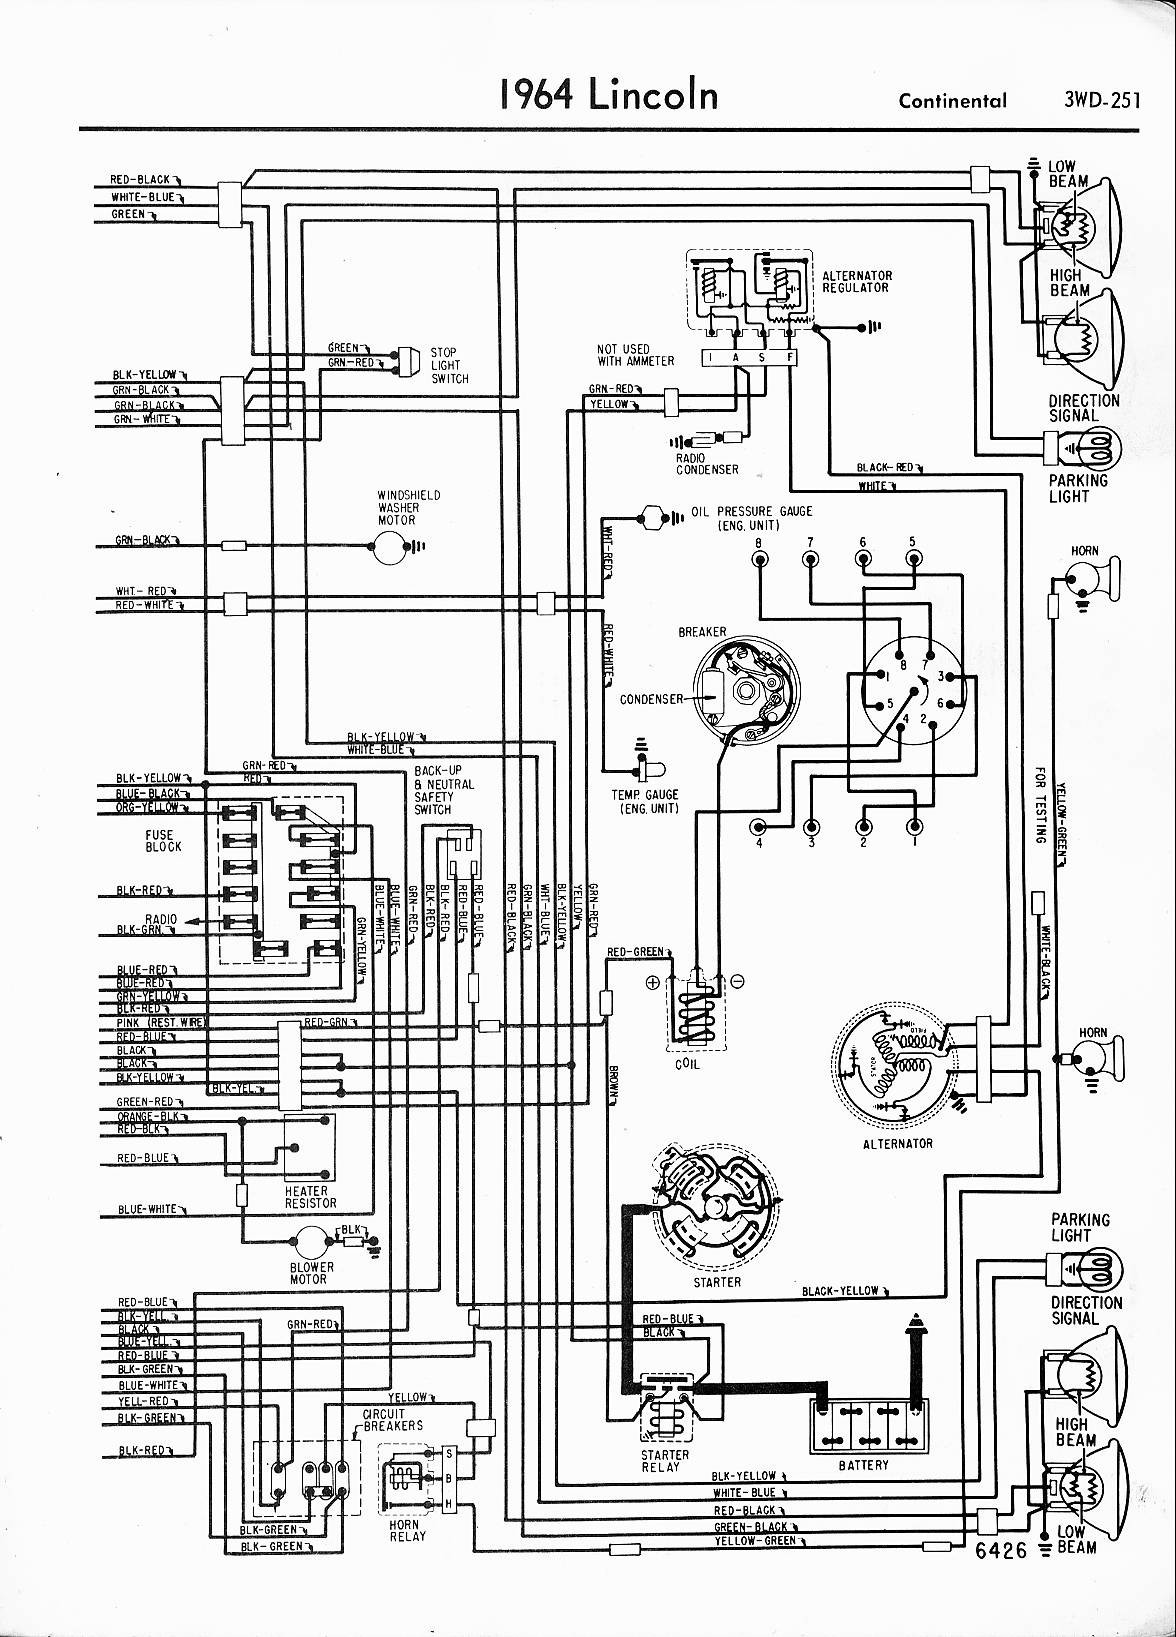 1948 Lincoln Wiring Diagram • Wiring Diagram For Free